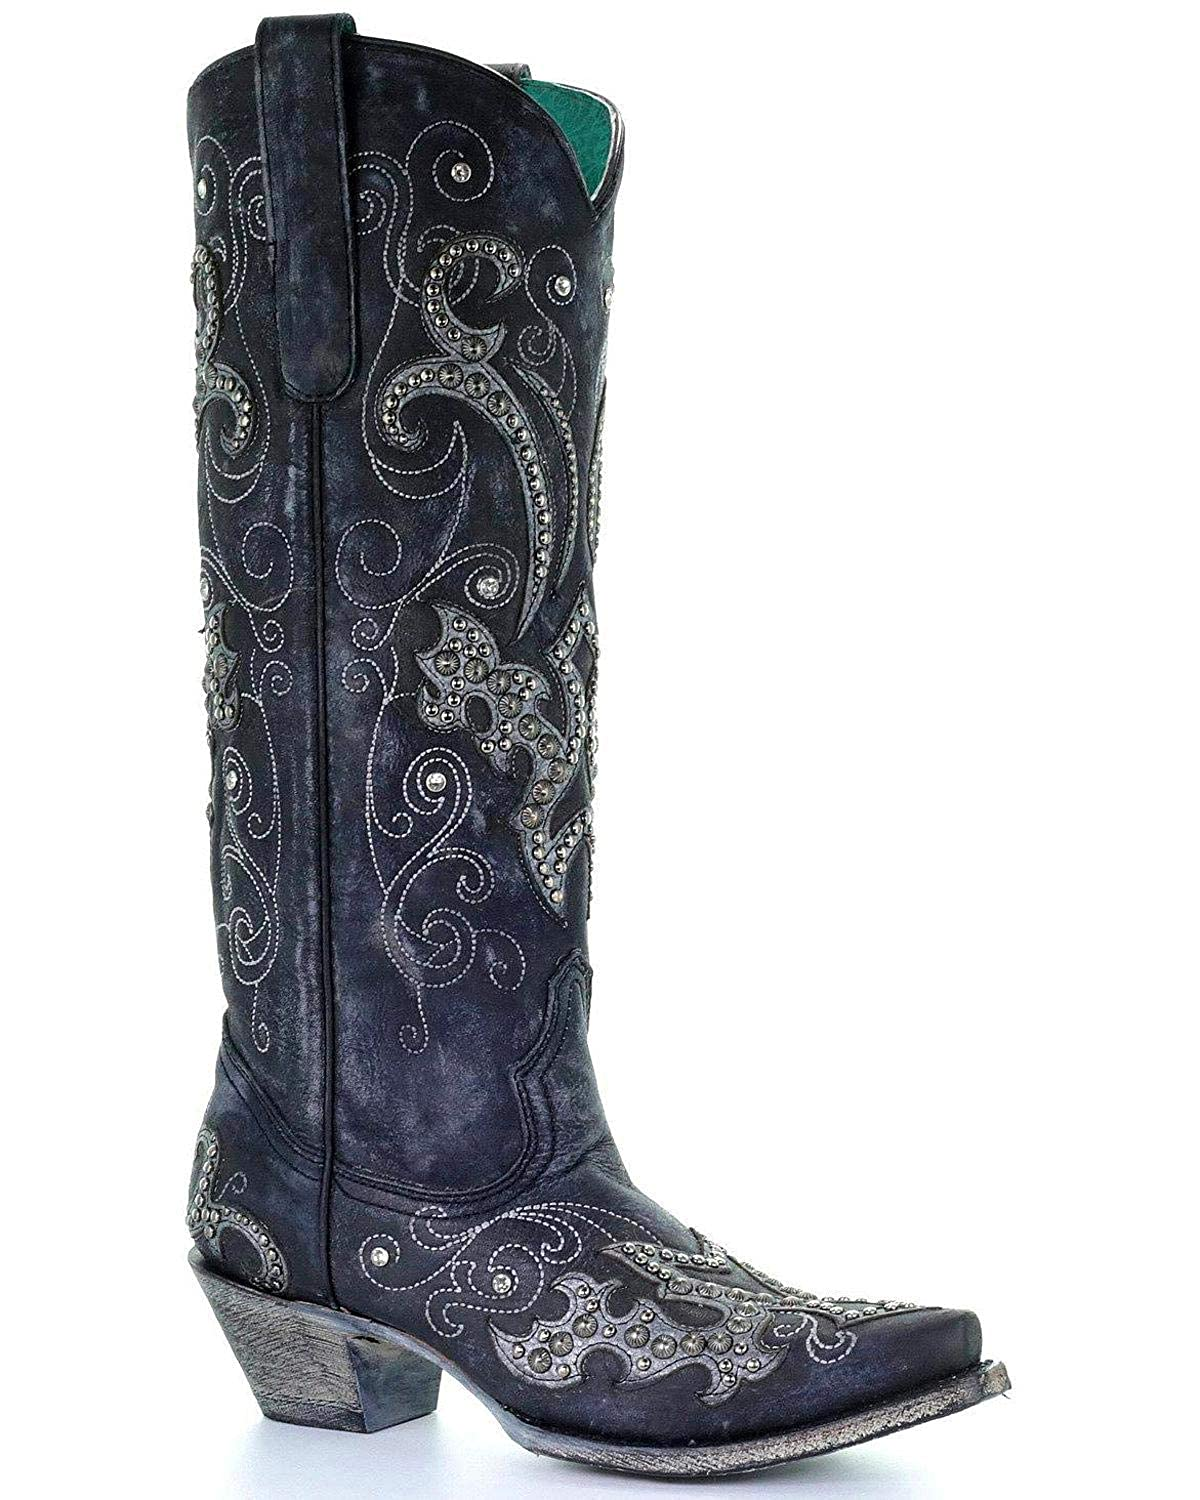 5ed4a019 Amazon.com | CORRAL Women's Tall Studded Overlay and Crystals Cowgirl Boot  Snip Toe | Boots